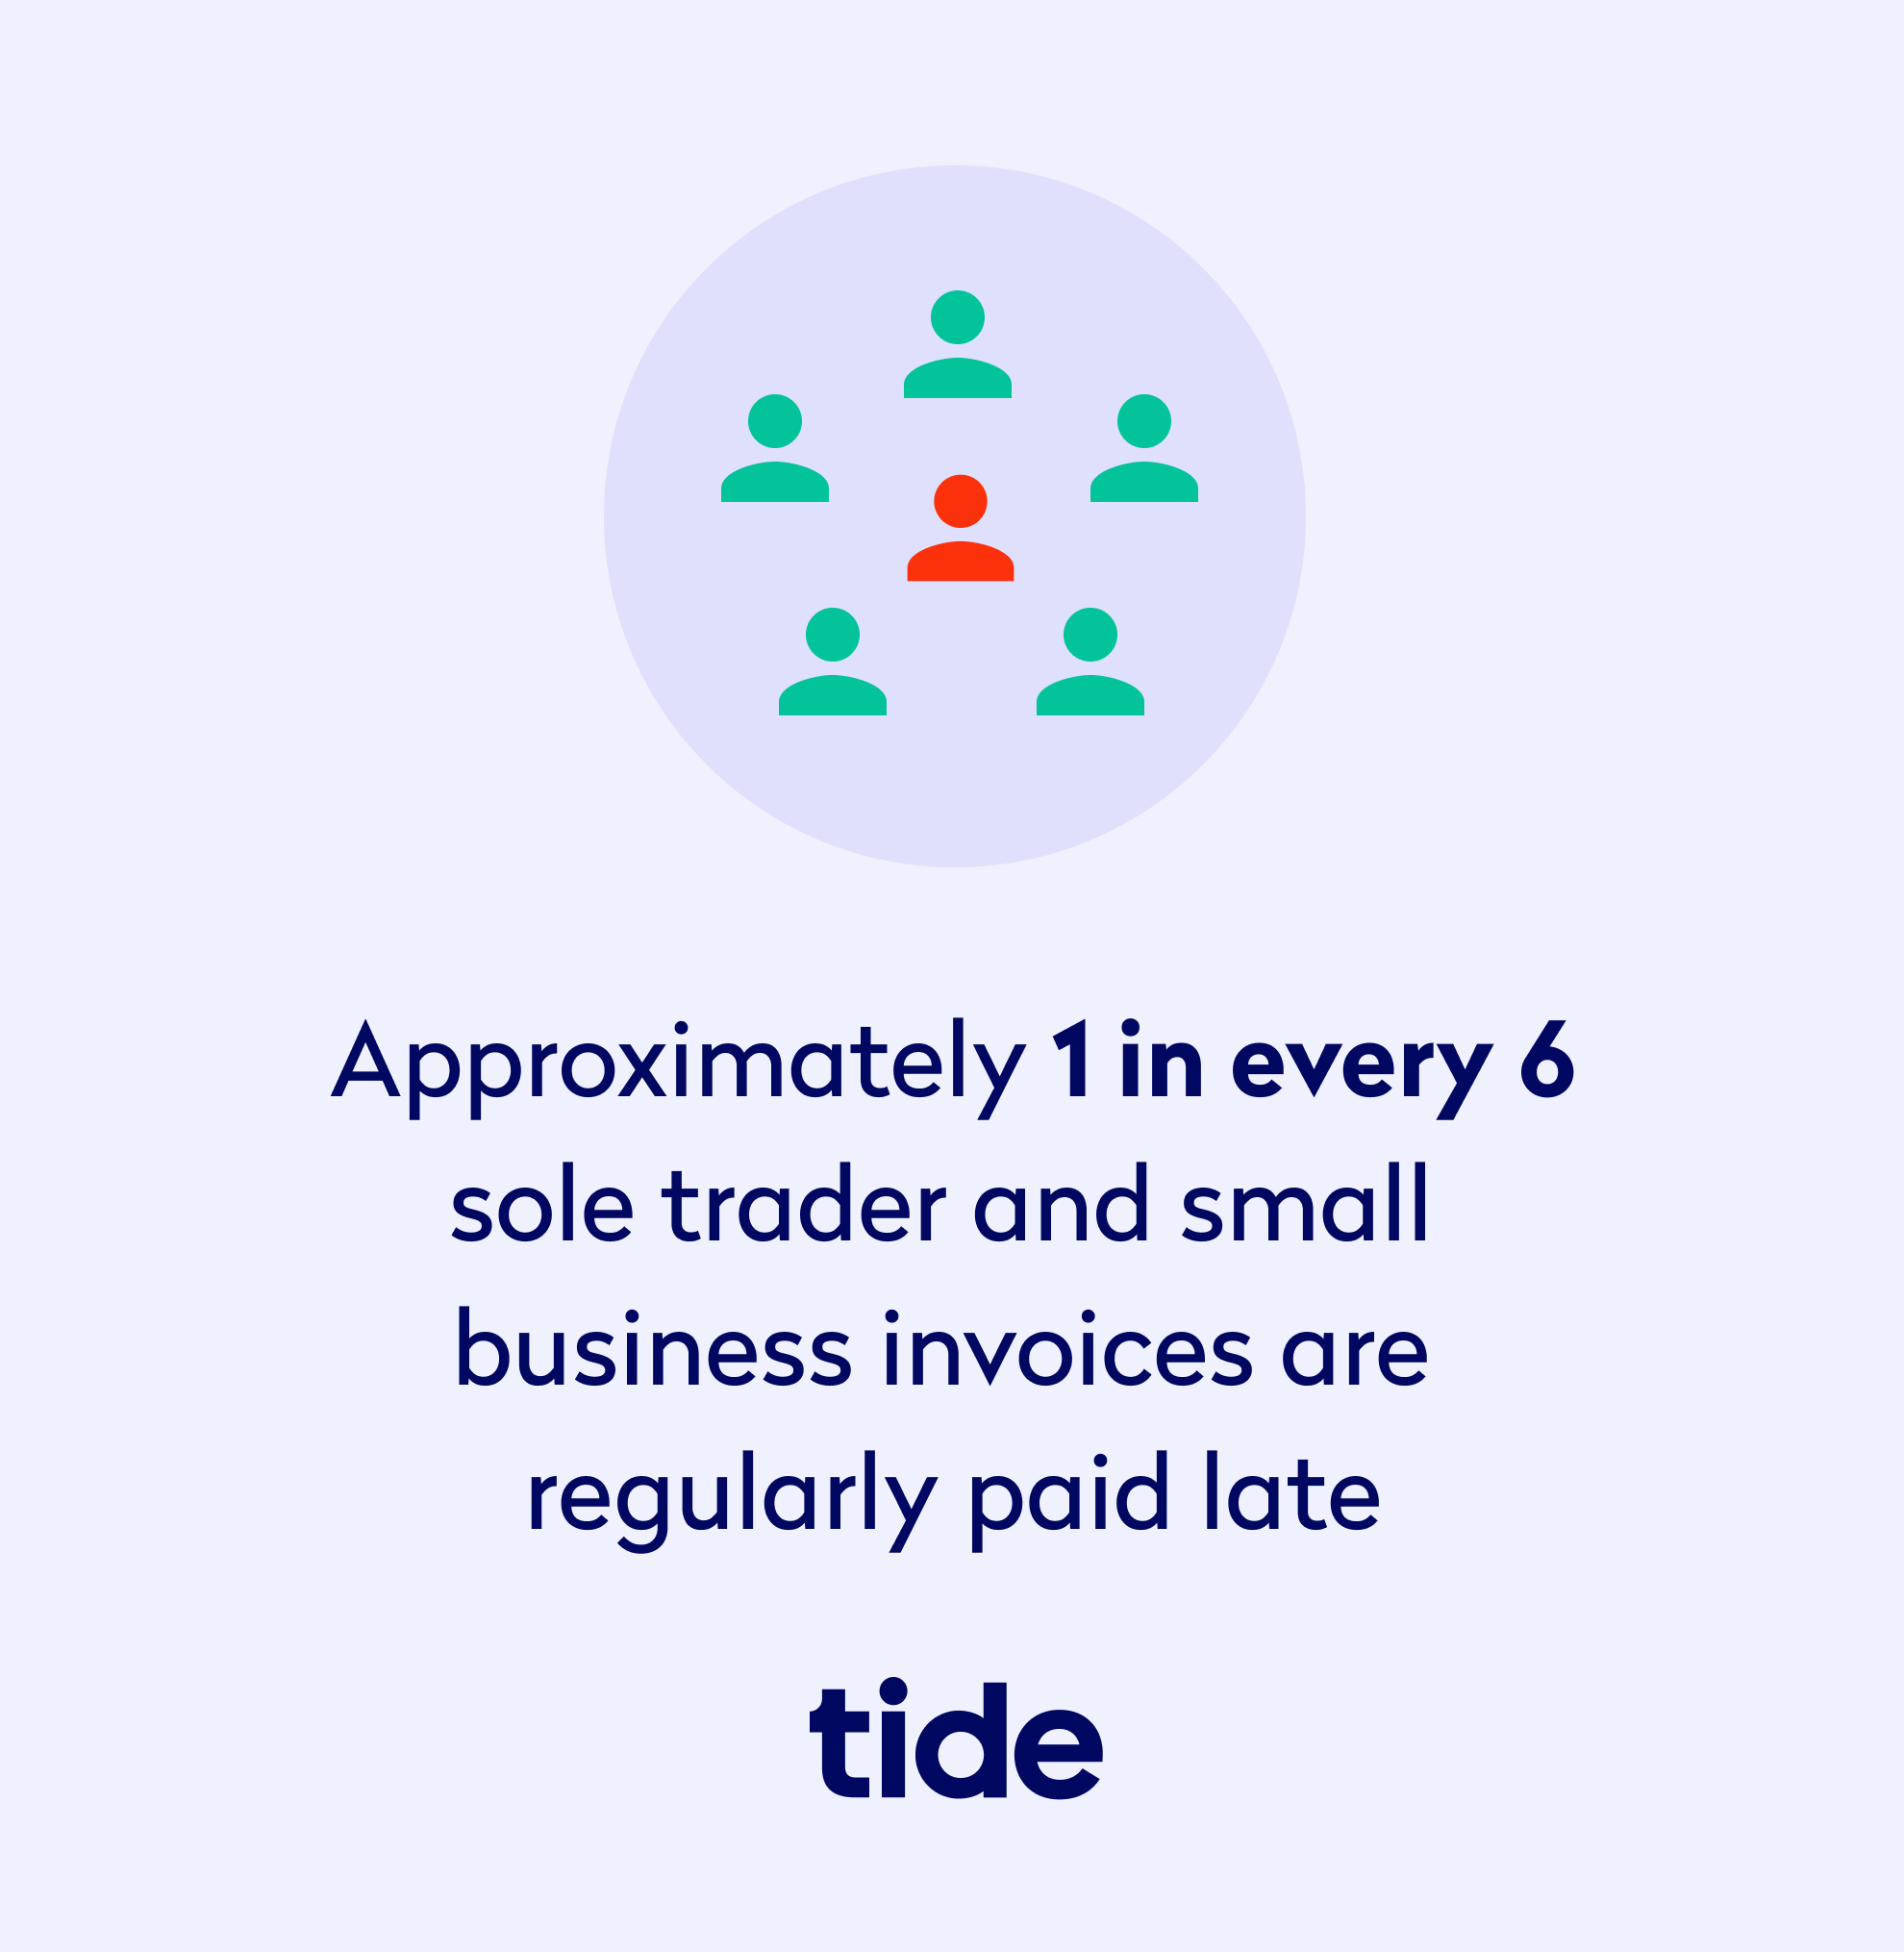 Tide study results